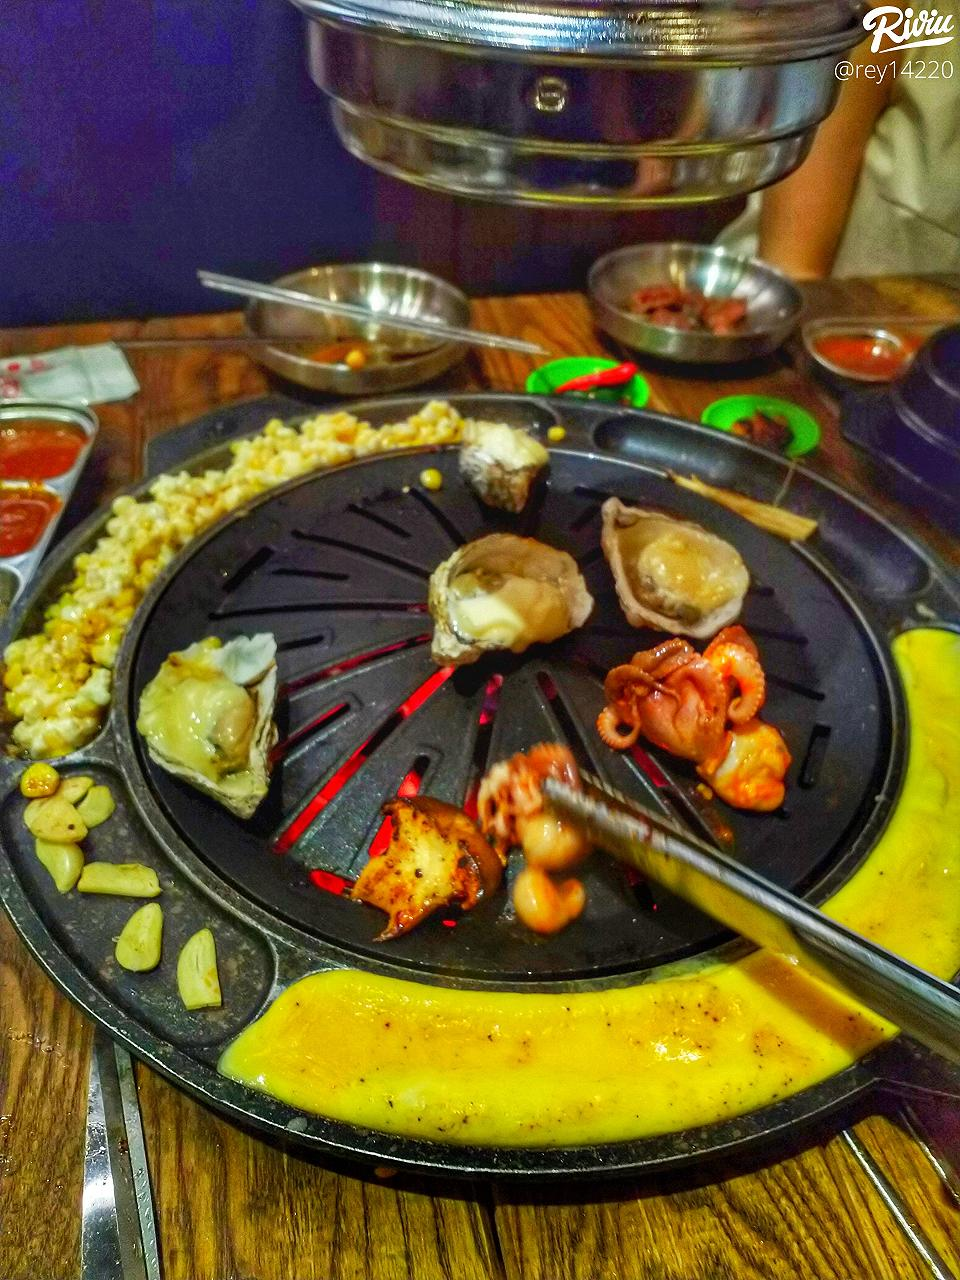 buffet thit nuong han quoc bros bbq 299k - anh 2